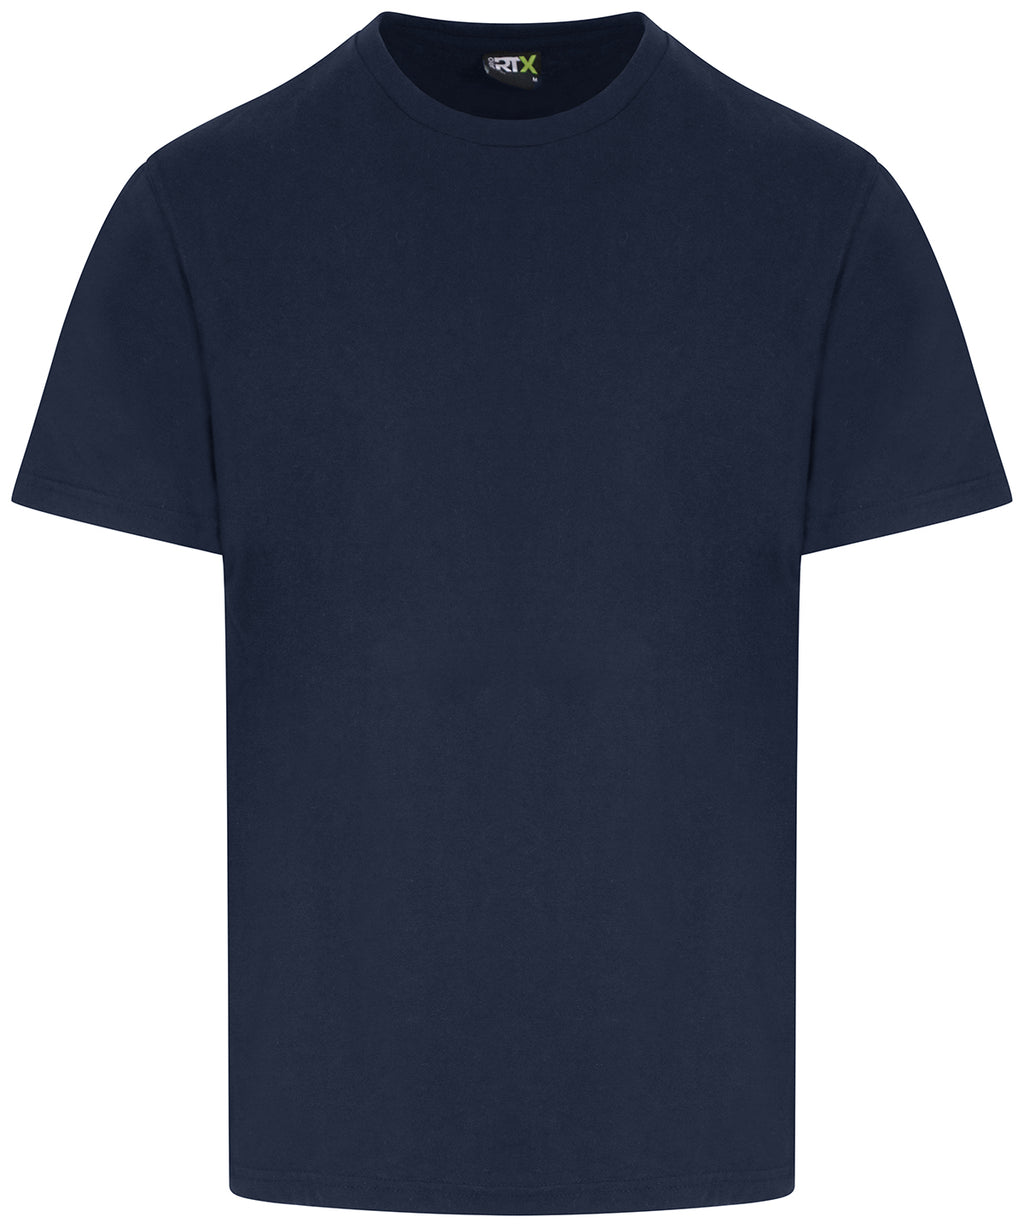 Mens Plain T-Shirt - Navy